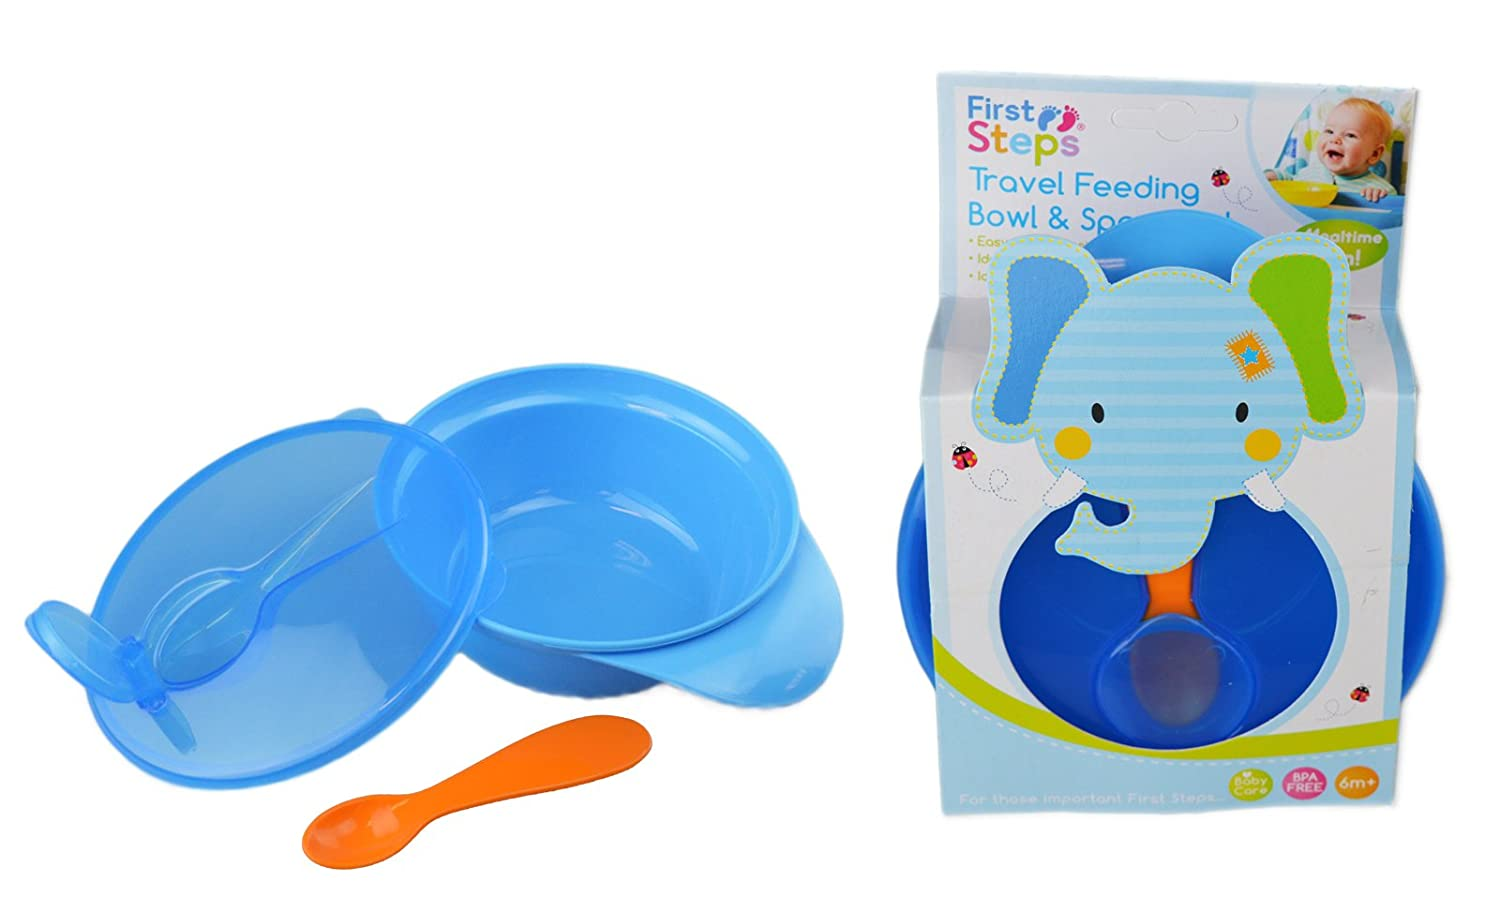 First Steps Travel Feeding Bowl Spoon Set Outdoor Weaning Self Feeding BPA Free RSW